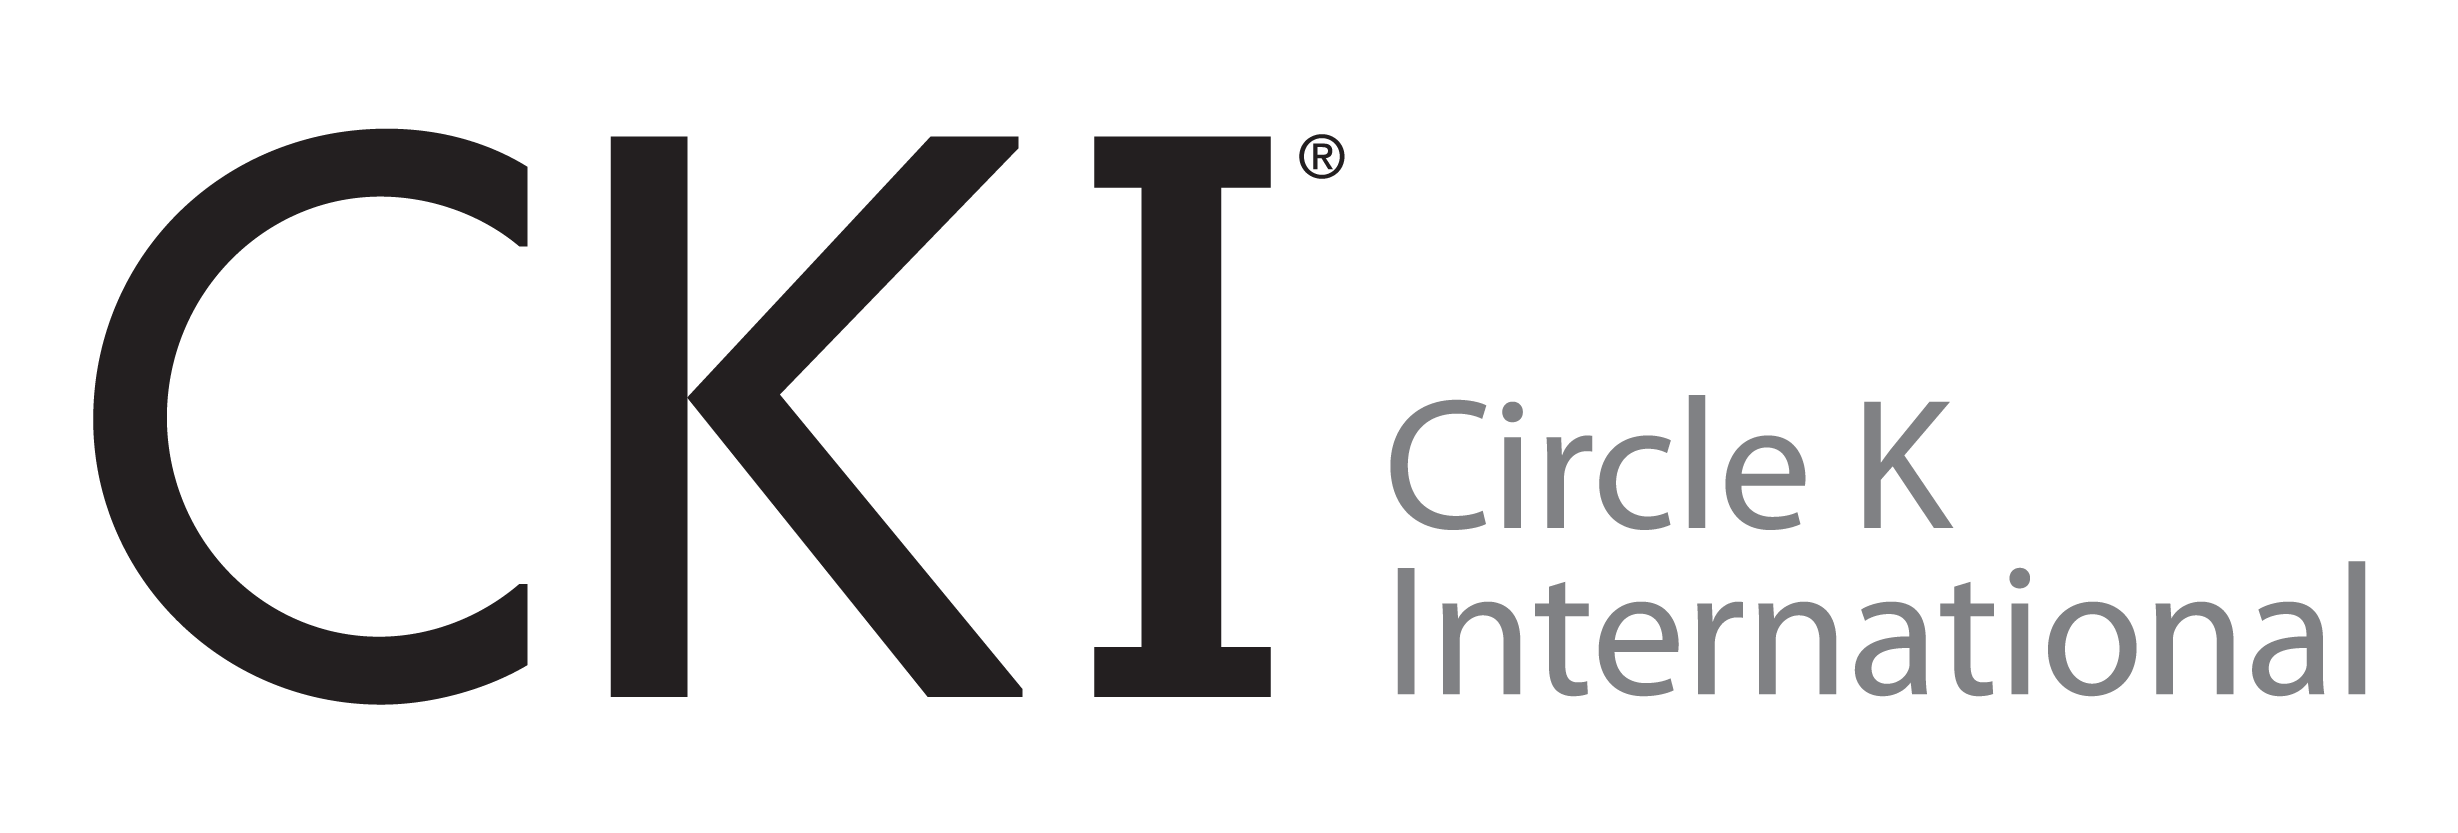 Circle k logo png. Cnh serving clubs in